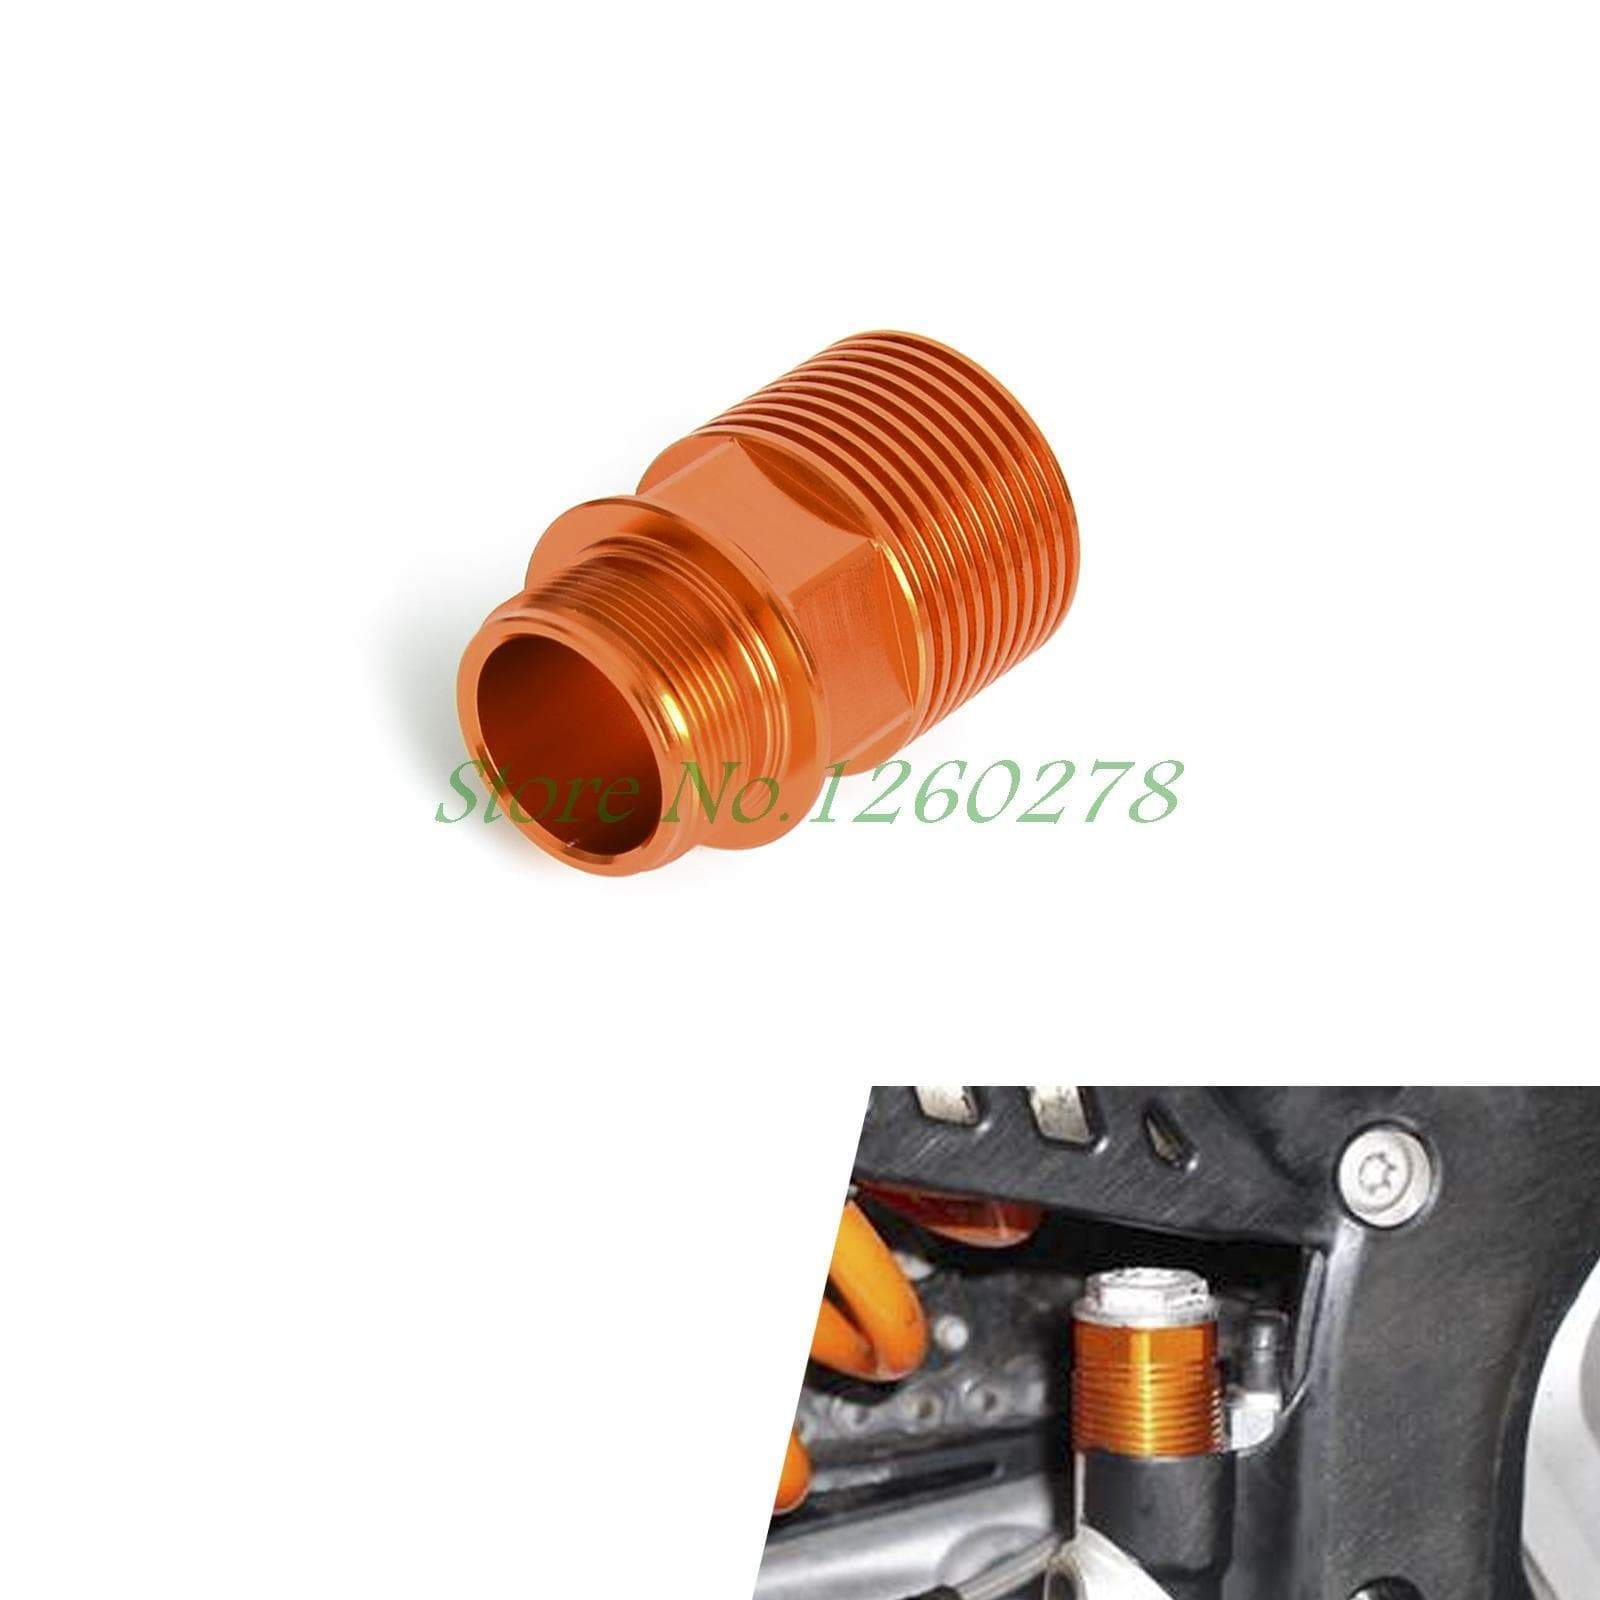 Motorcycle Rear Brake Reservoir Extender For KTM 125 250 300 450 500 525 530 - Trivoshop